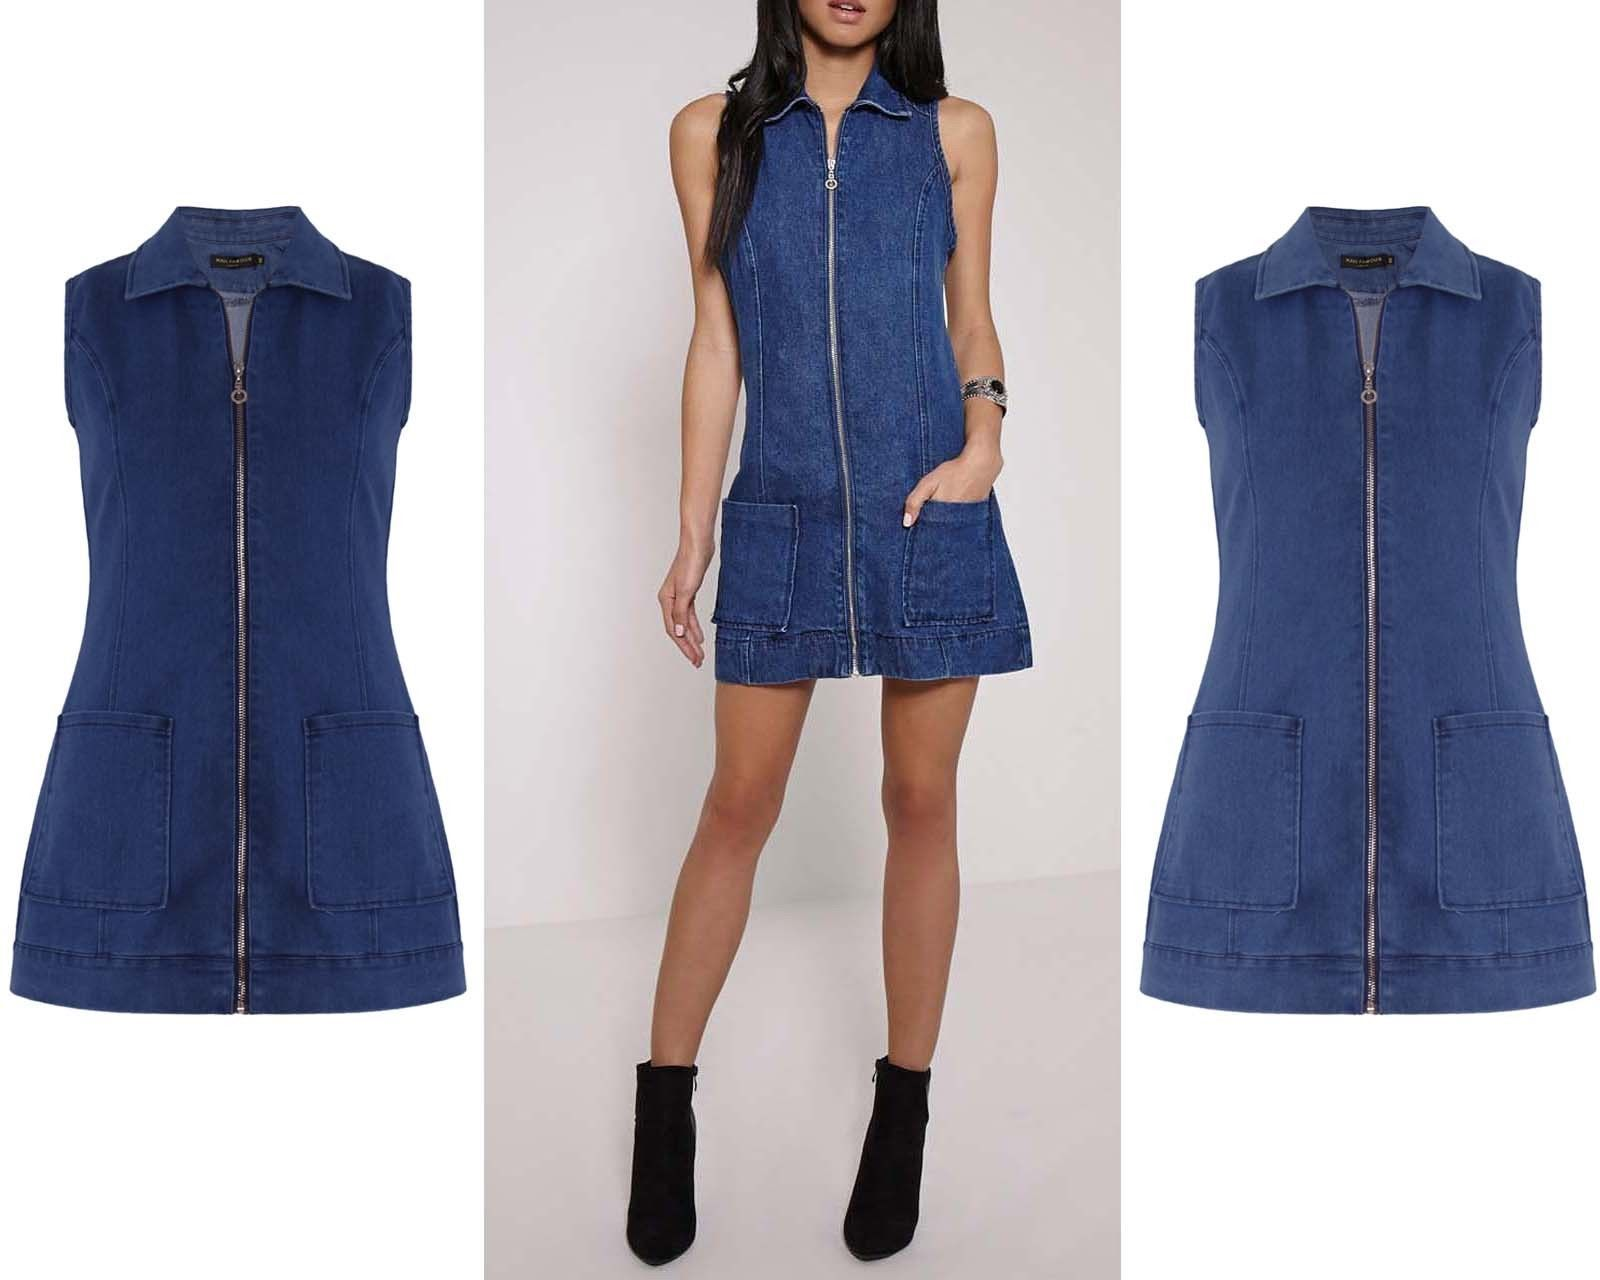 00833ab65d1 Women Denim Sleeveless Front Zip Pockets Shirt Collar Mini Short Dress 8-16